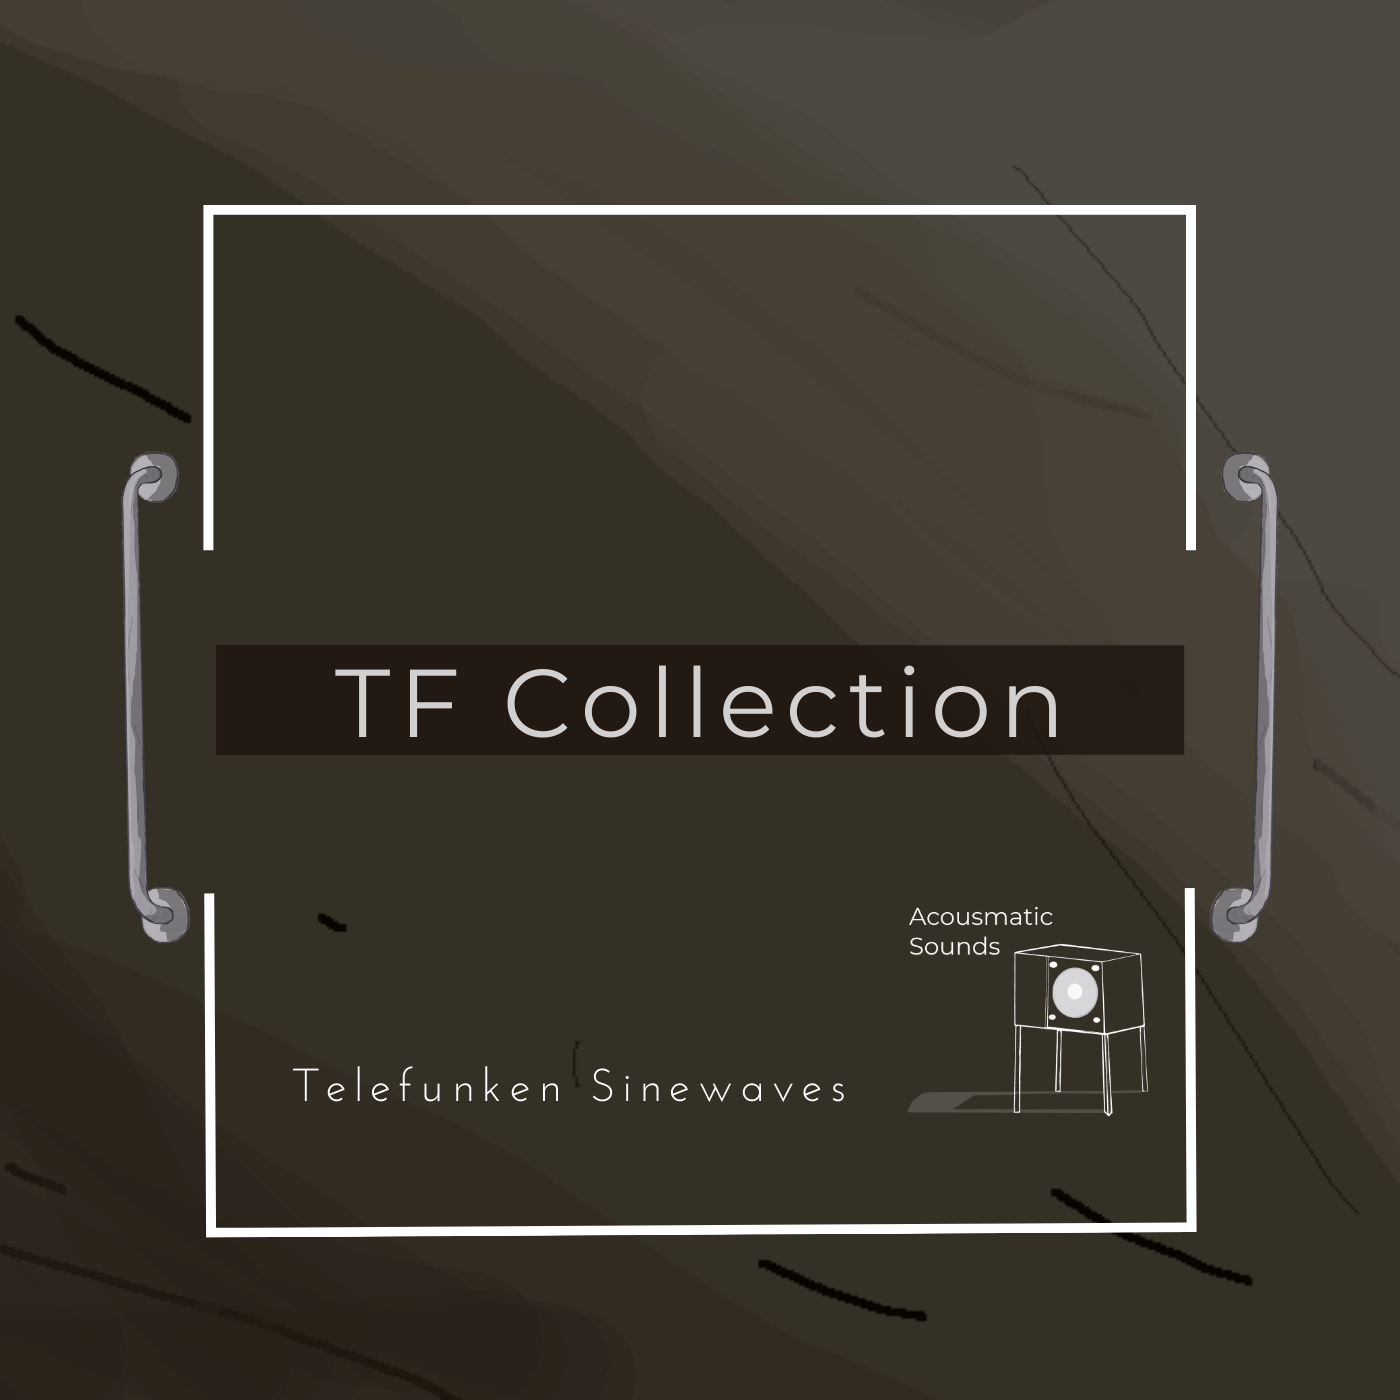 TF Collection